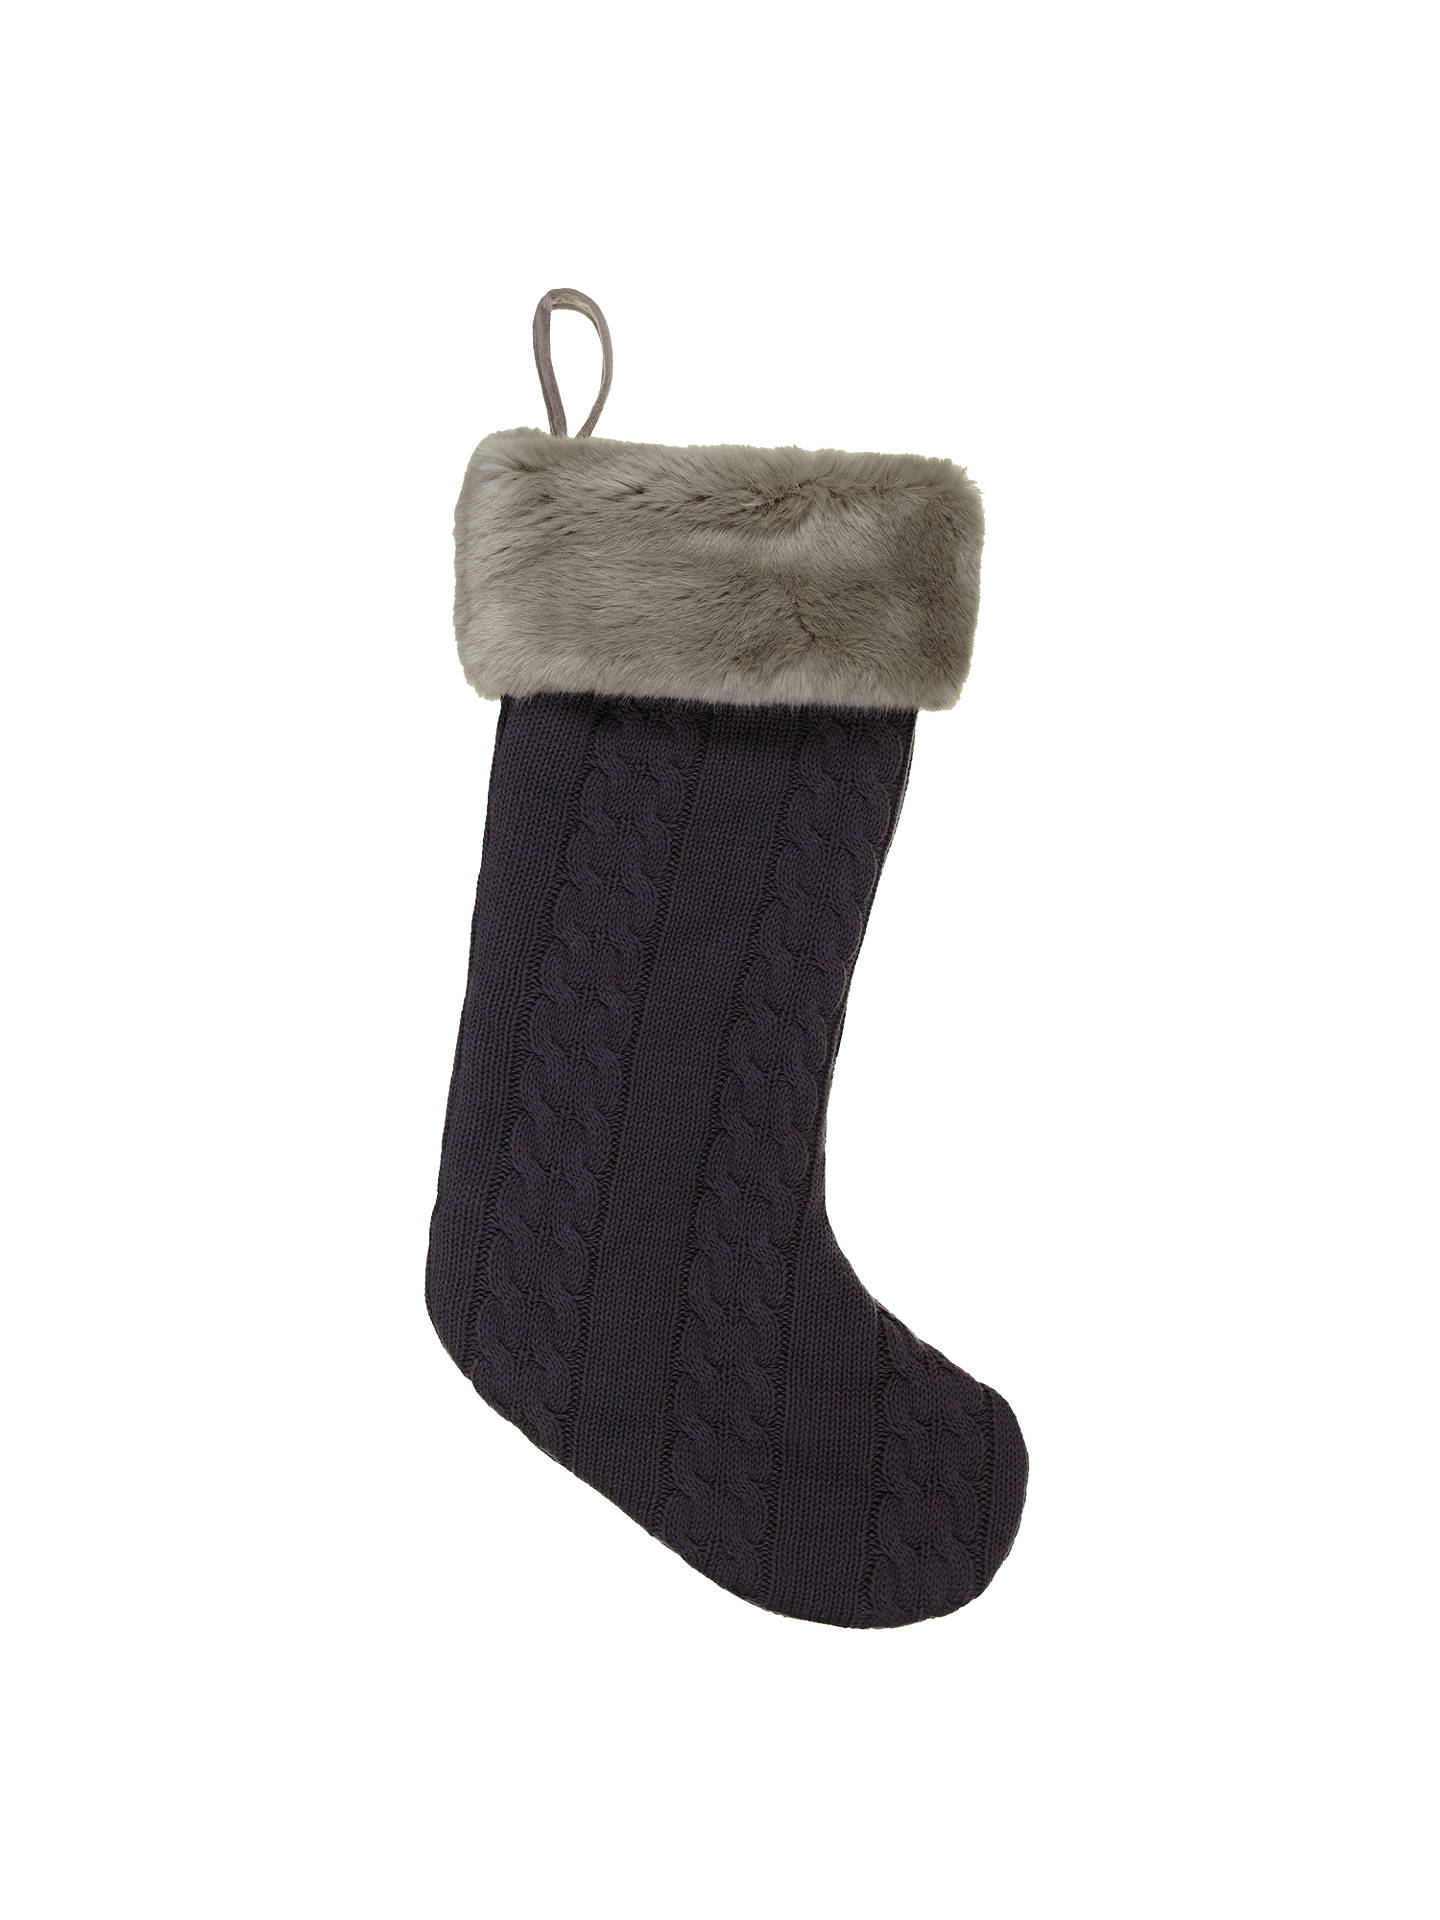 Cable Knit Christmas Stockings.John Lewis Cable Knit Faux Fur Christmas Stocking At John